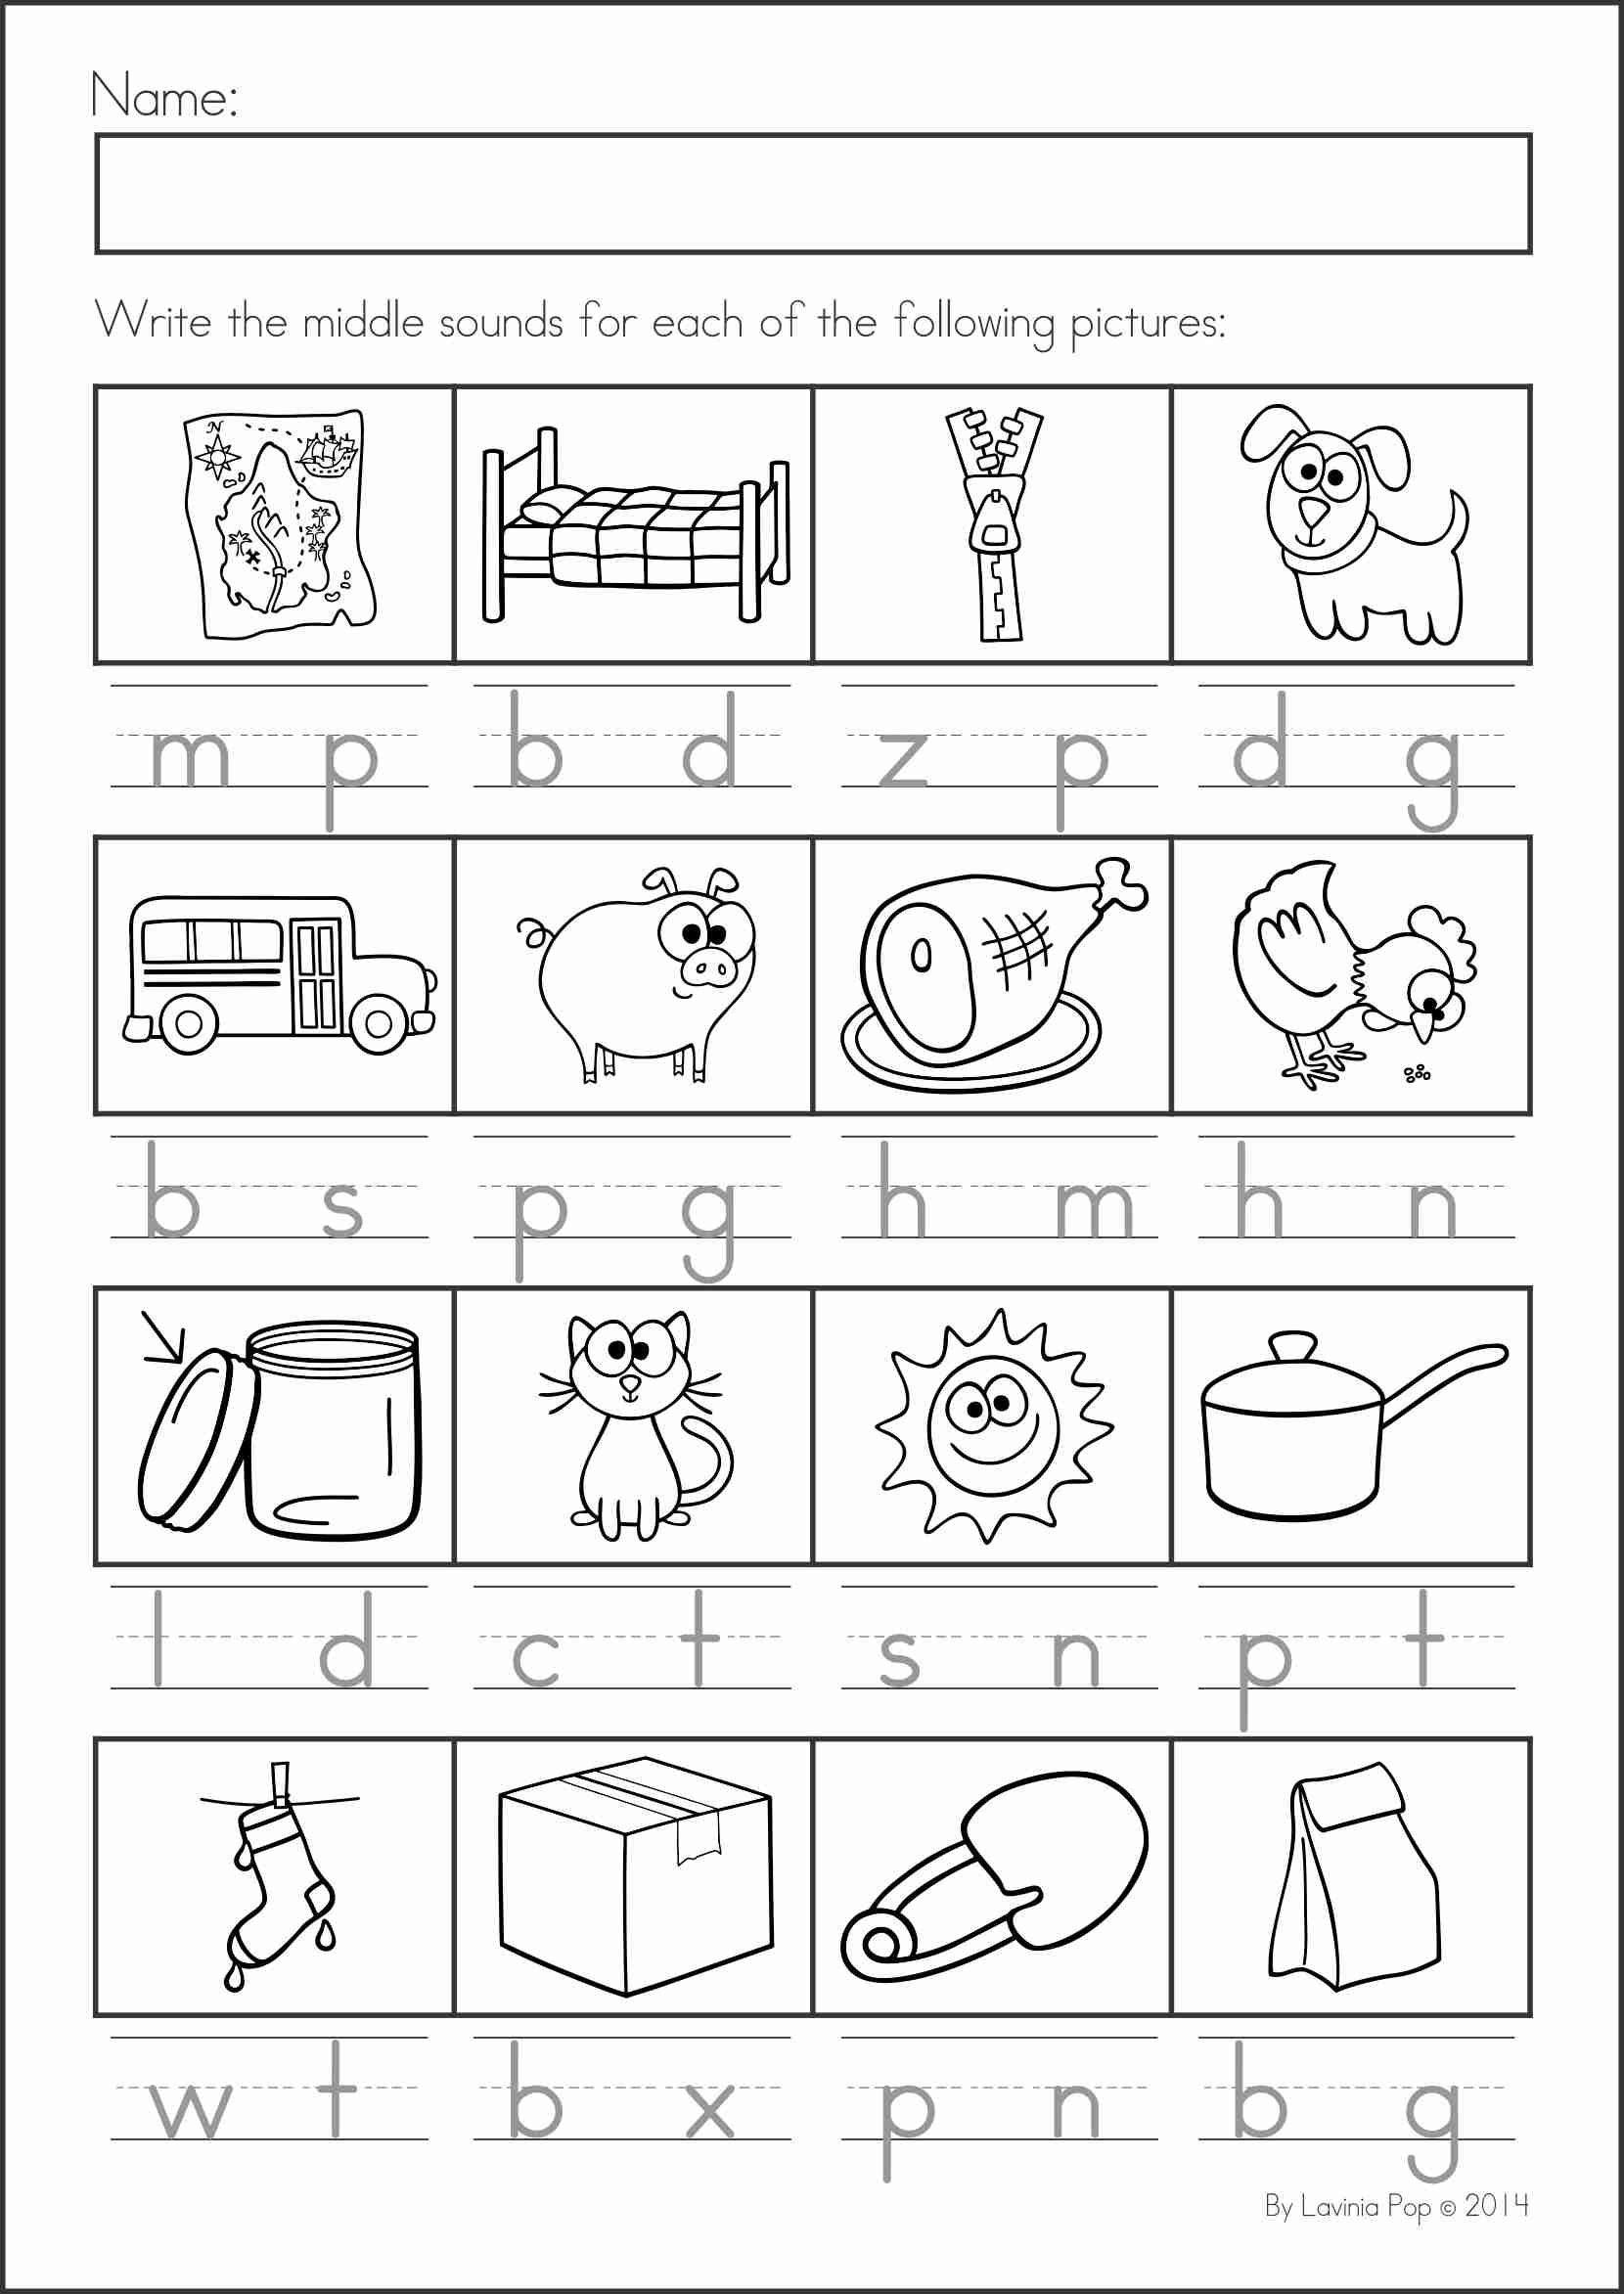 worksheet Beginning And Ending Sounds Worksheets 78 images about beginning middle ending sounds on pinterest literacy and letter worksheets